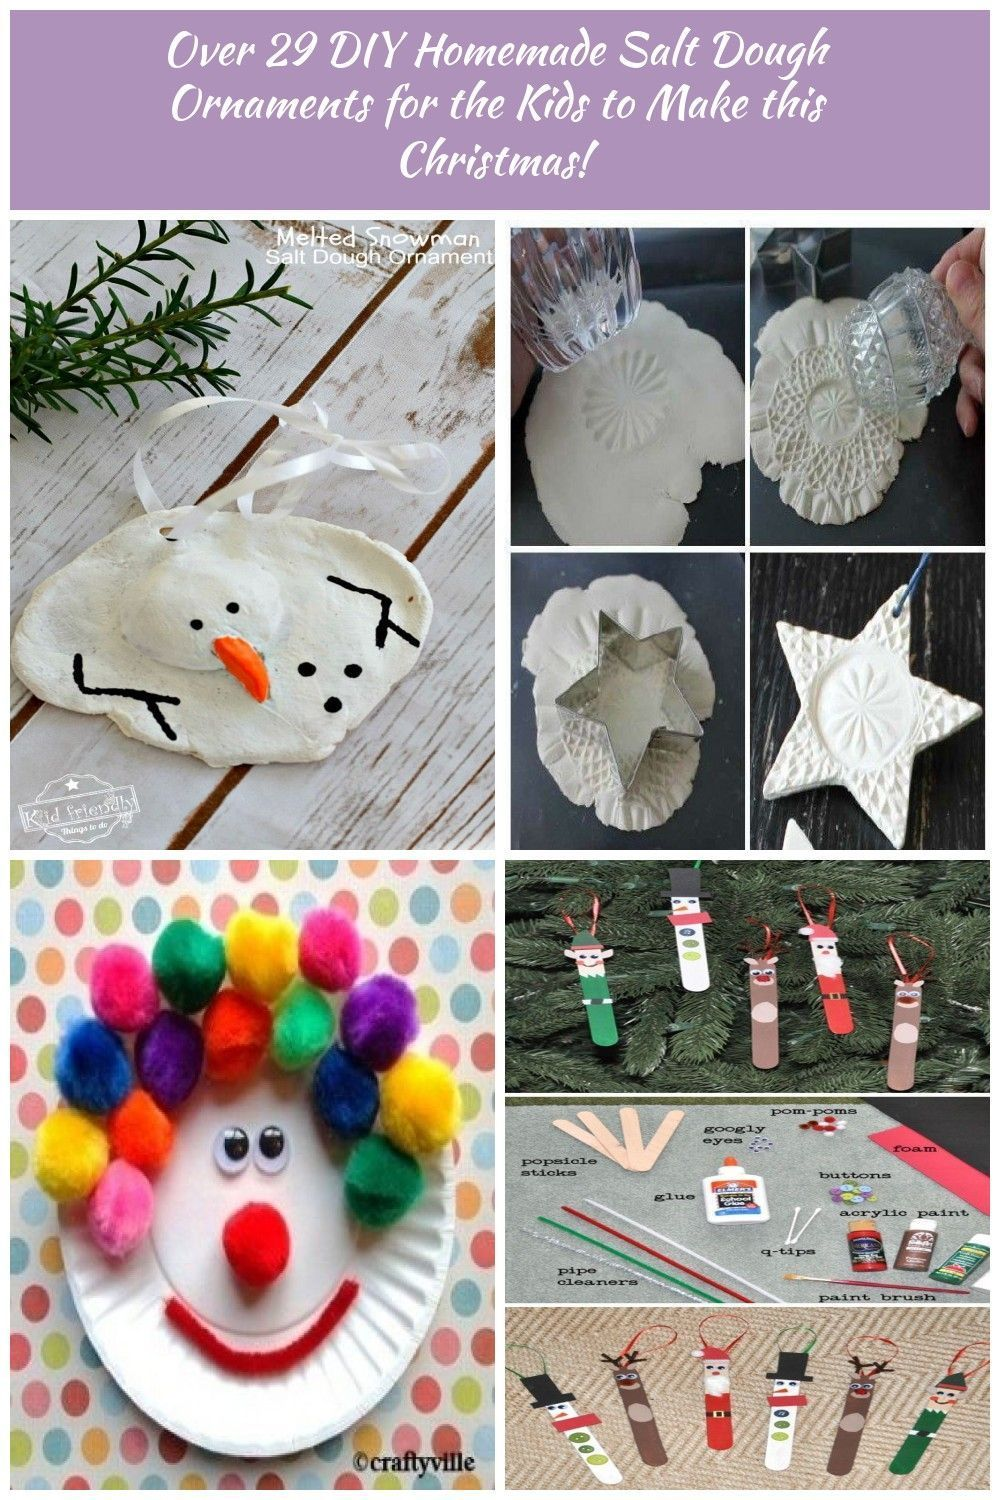 Over 29 Diy Homemade Salt Dough Ornaments For The Kids To Make This Christmas Great Kids Christmas Crafts Easy Christmas Crafts For Kids Salt Dough Ornaments